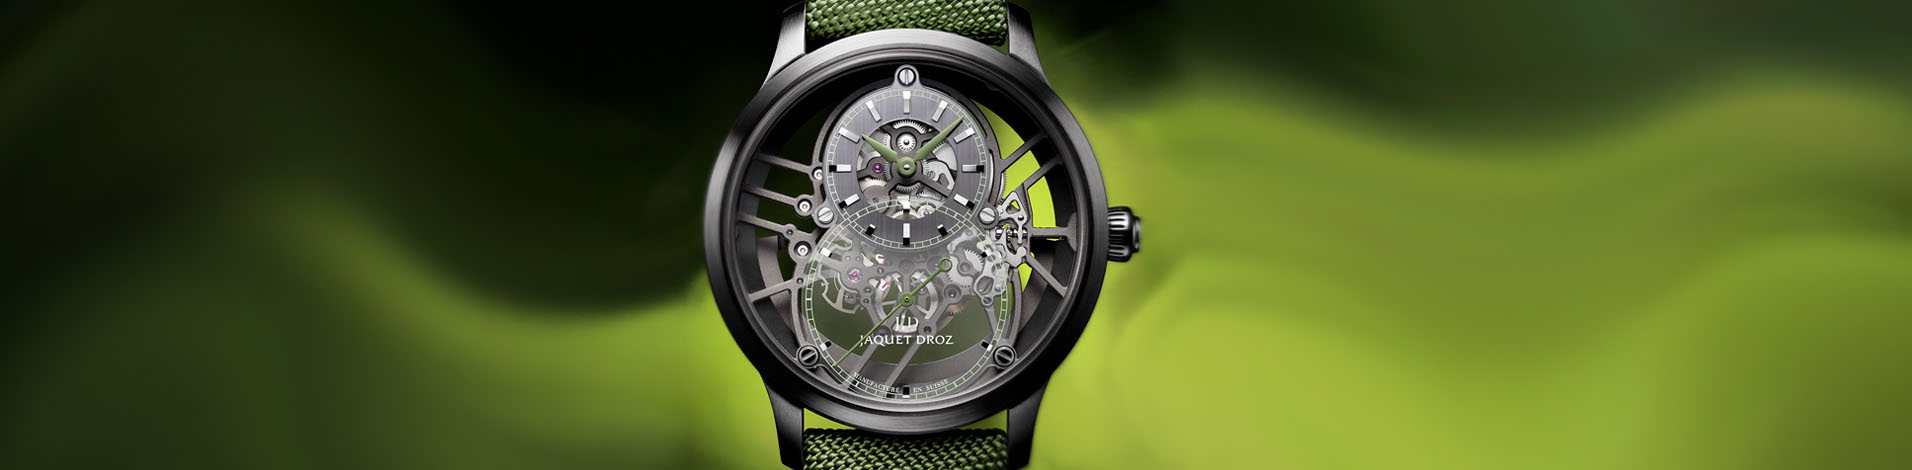 JAQUET DROZ NOVELTY ARRIVALS - MARCH 2021 NEWS article hero image